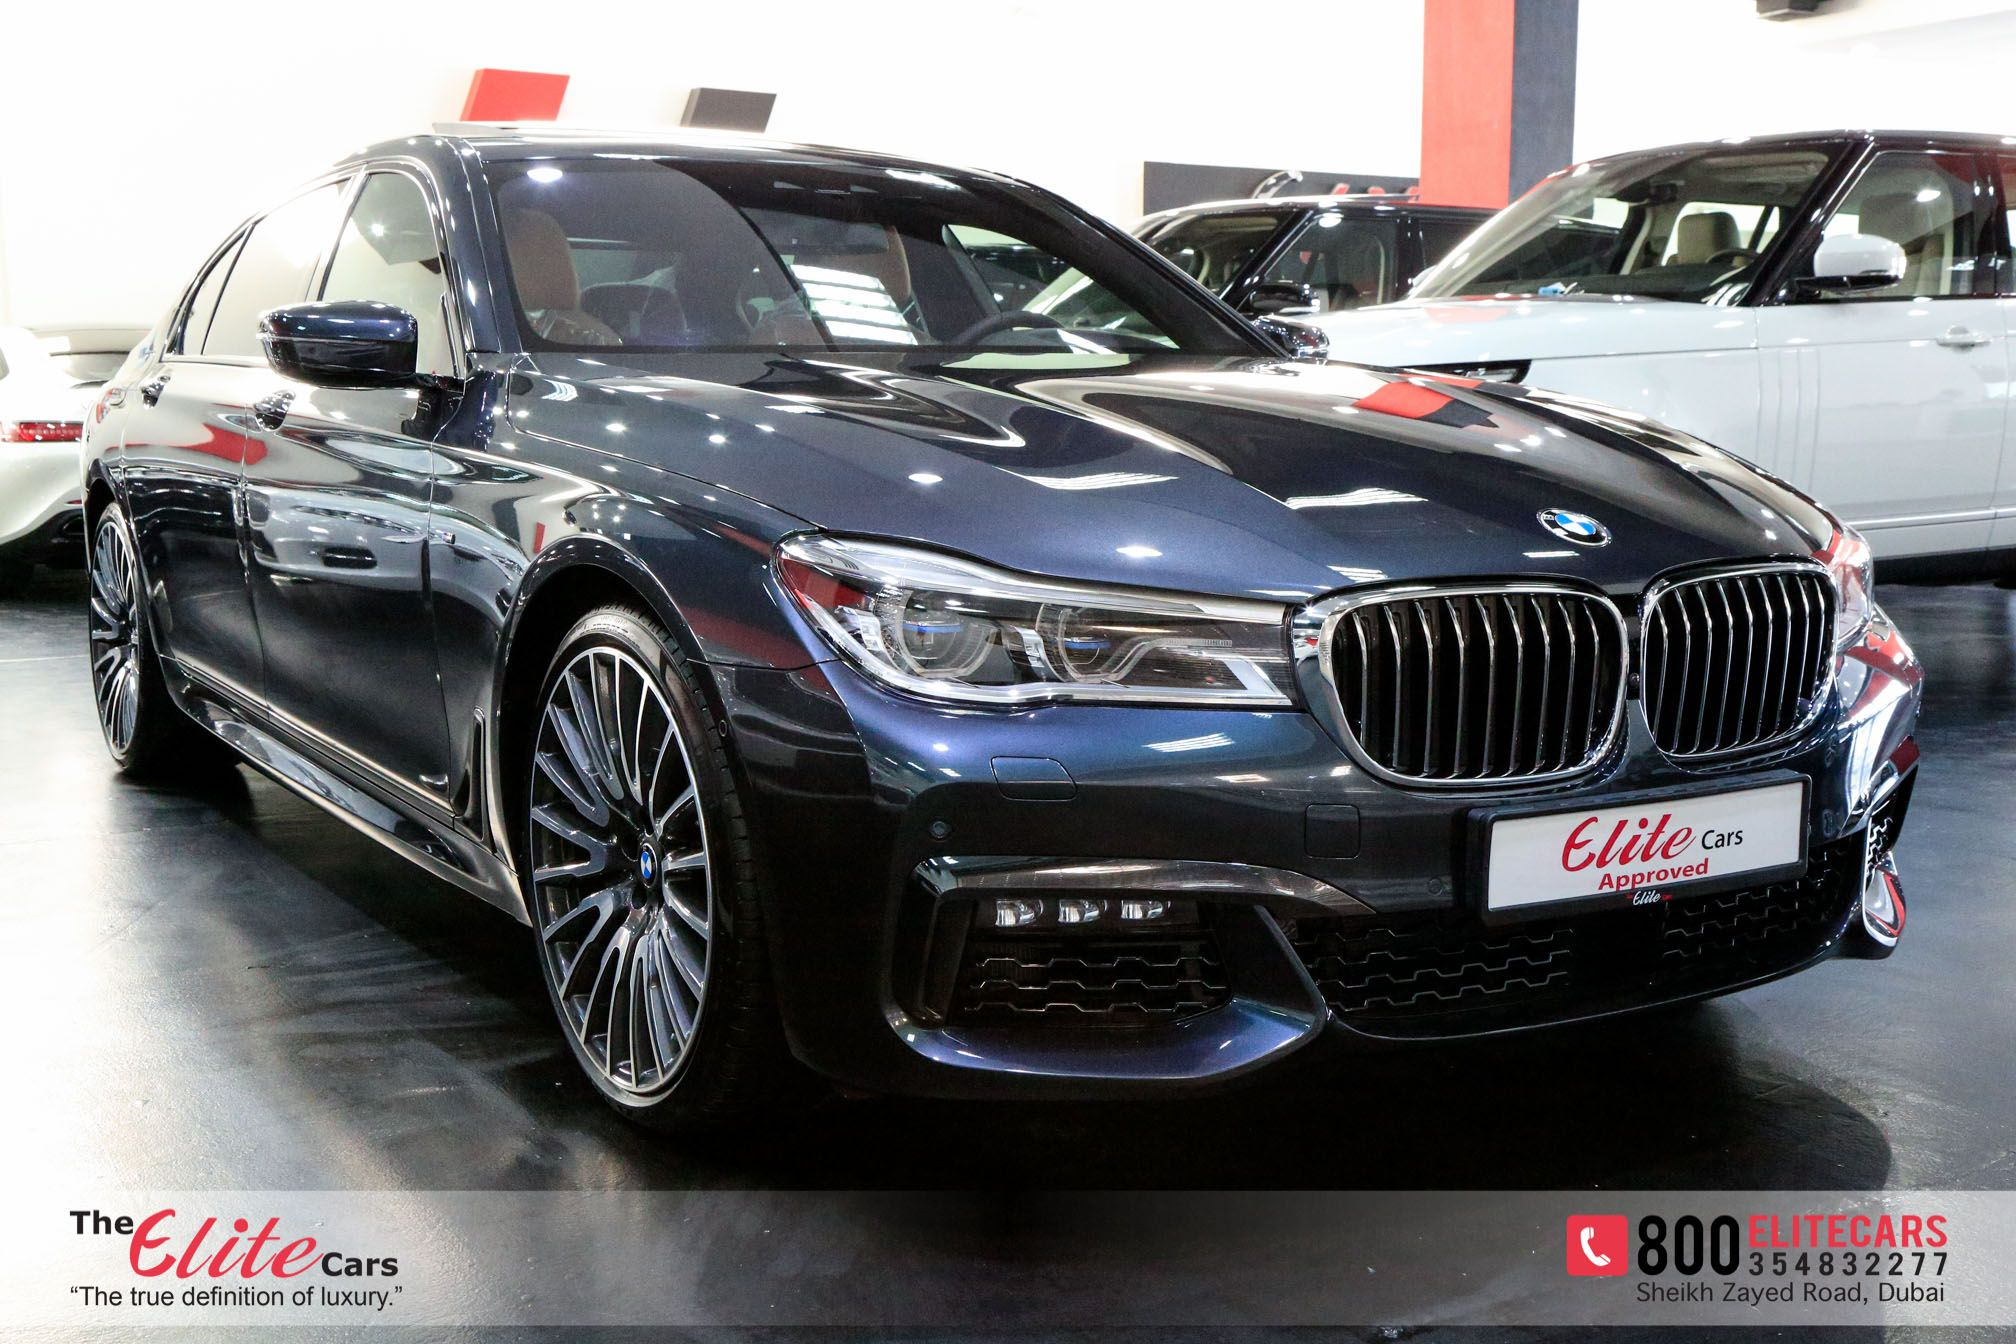 Bmw 750li M Kit Brand New Six Years Warranty And Service Contract Highest Options The Elite Cars For Pre Owned And Used Cars Bmw Car Dealership Mercedes Car